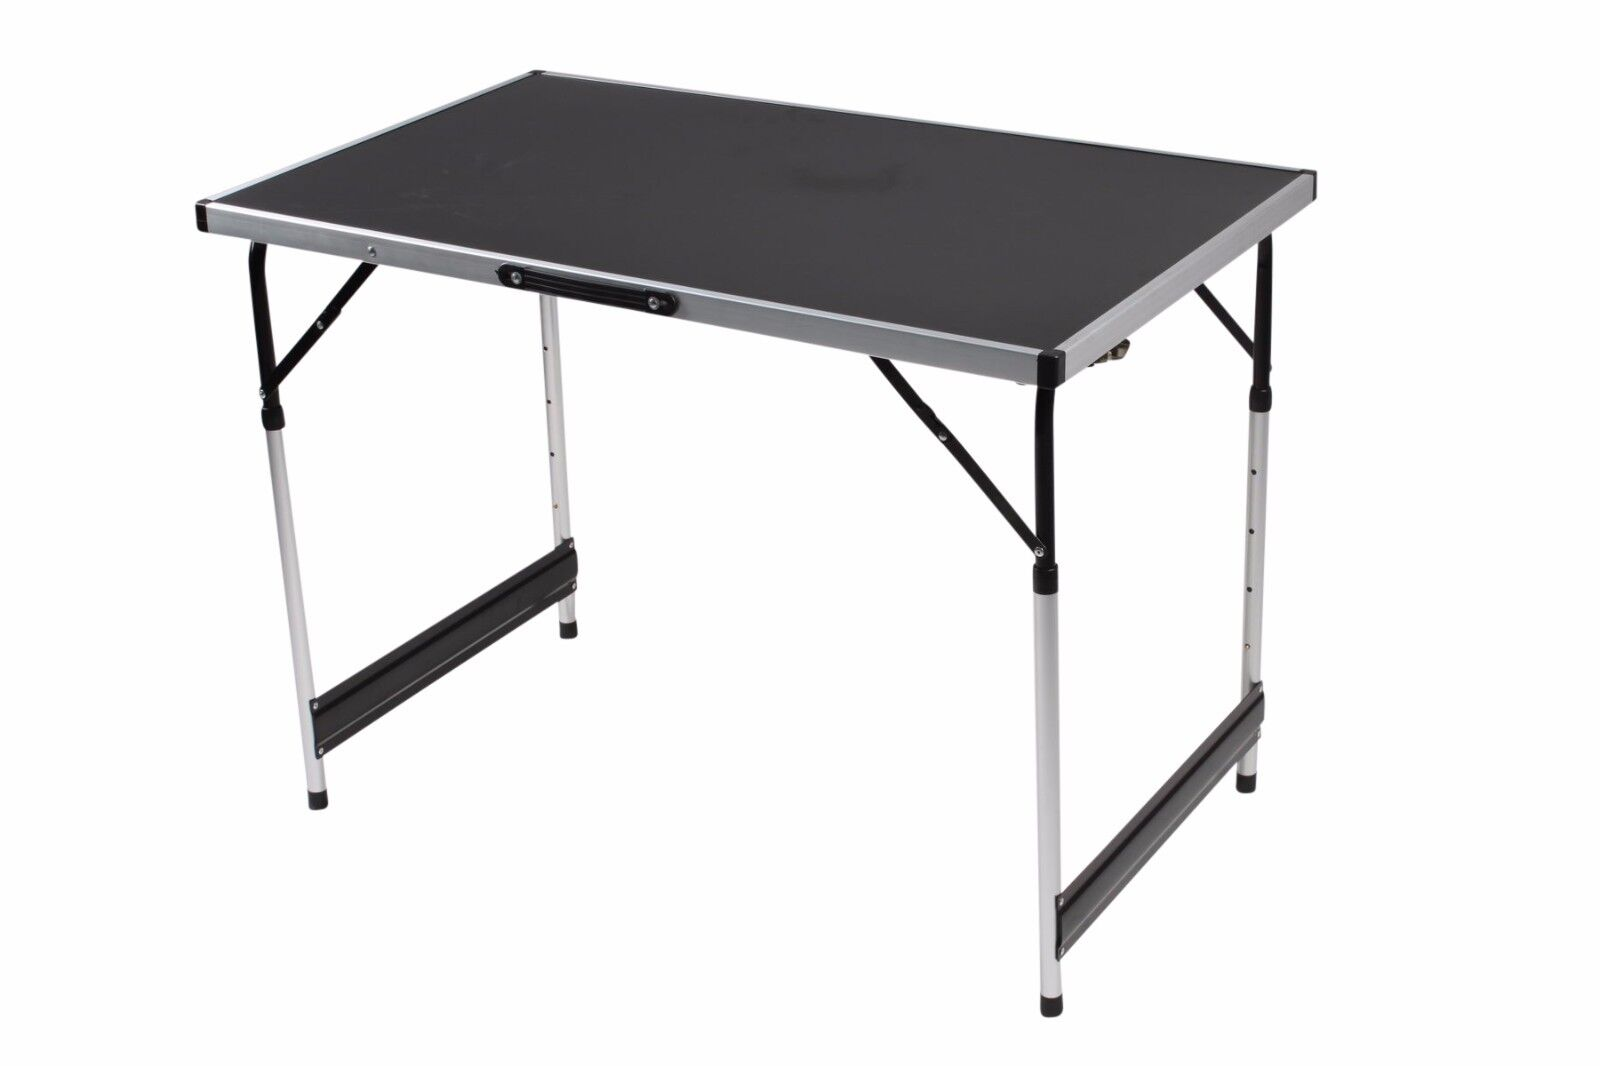 1m Table Metre Aluminium Lightweight Height Adjustable Folding Table 1m - Set of 3 Tables 484c3e